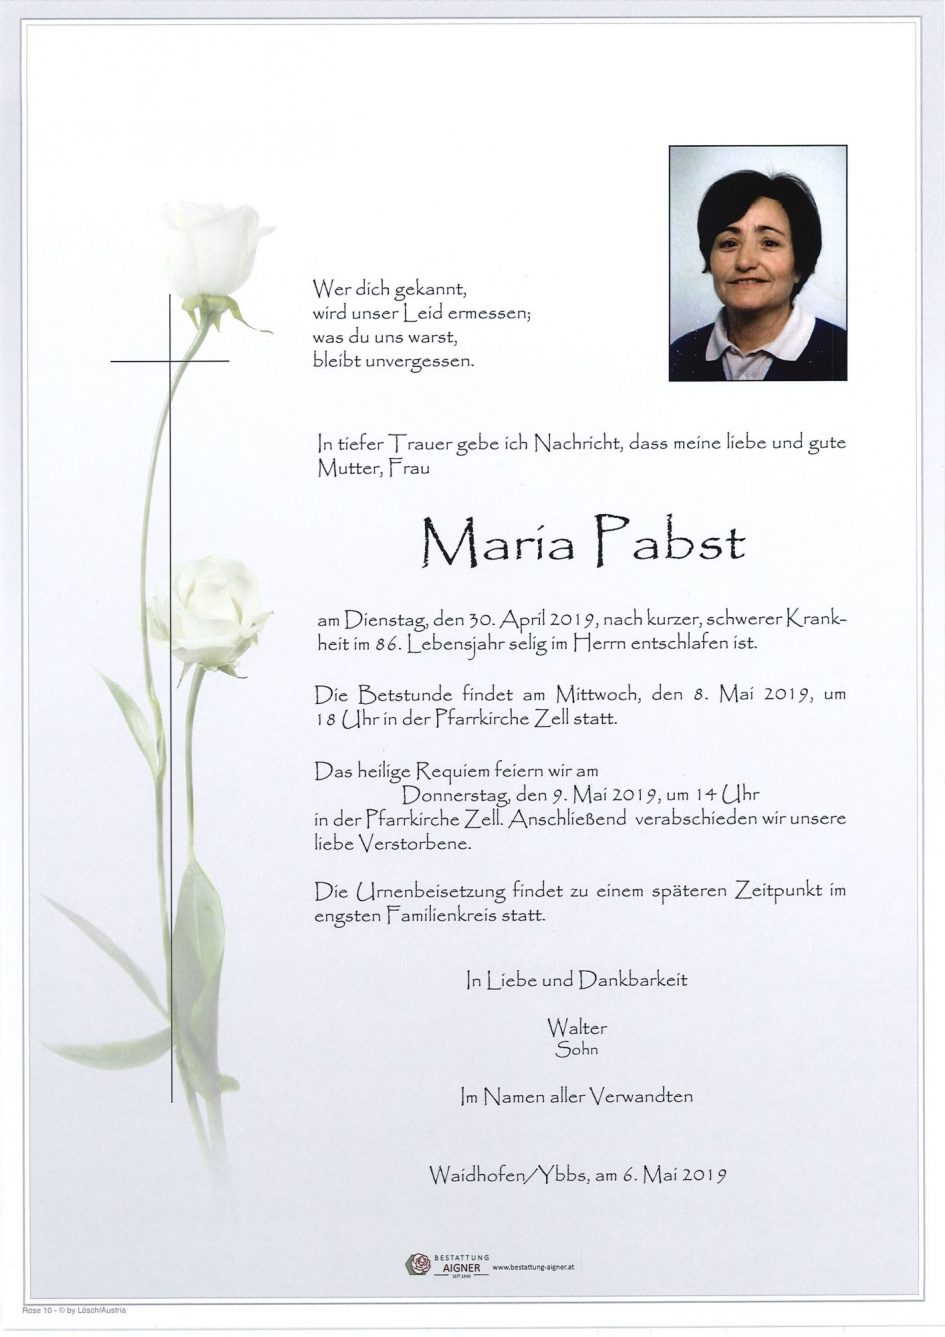 Maria Pabst